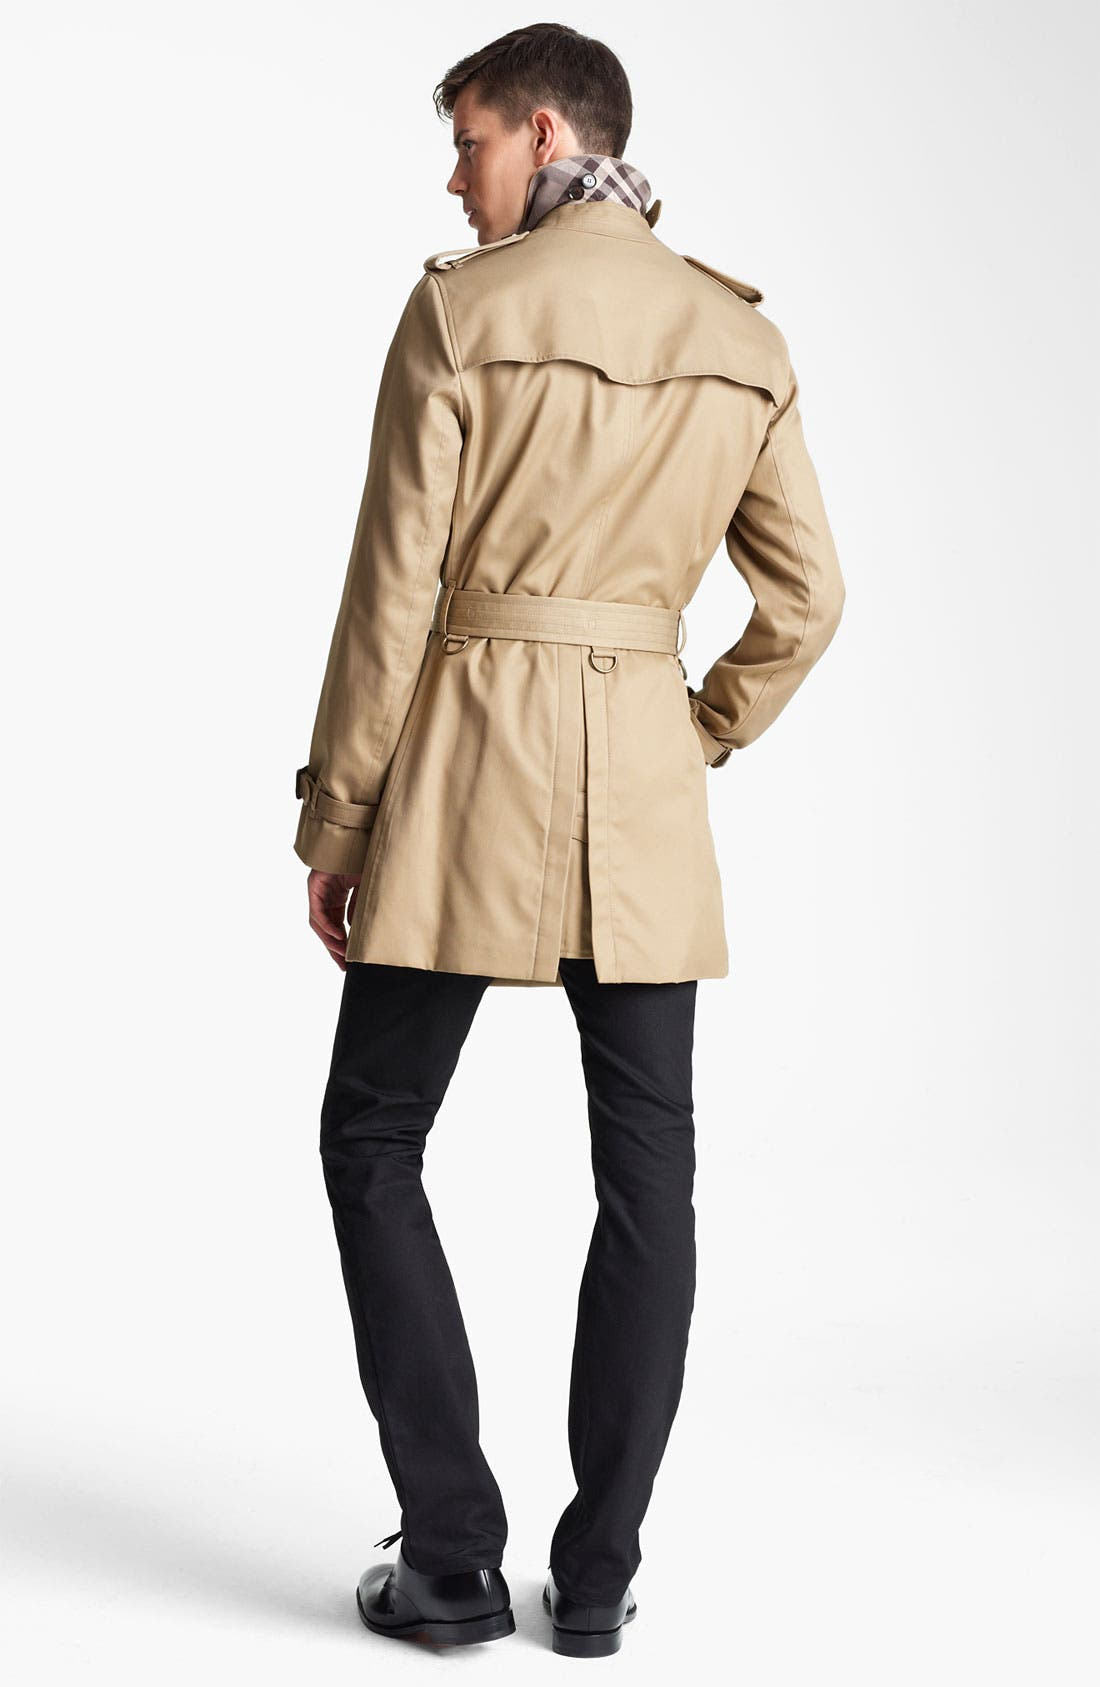 London 'Britton' Single Breasted Trench Coat,                             Alternate thumbnail 6, color,                             250